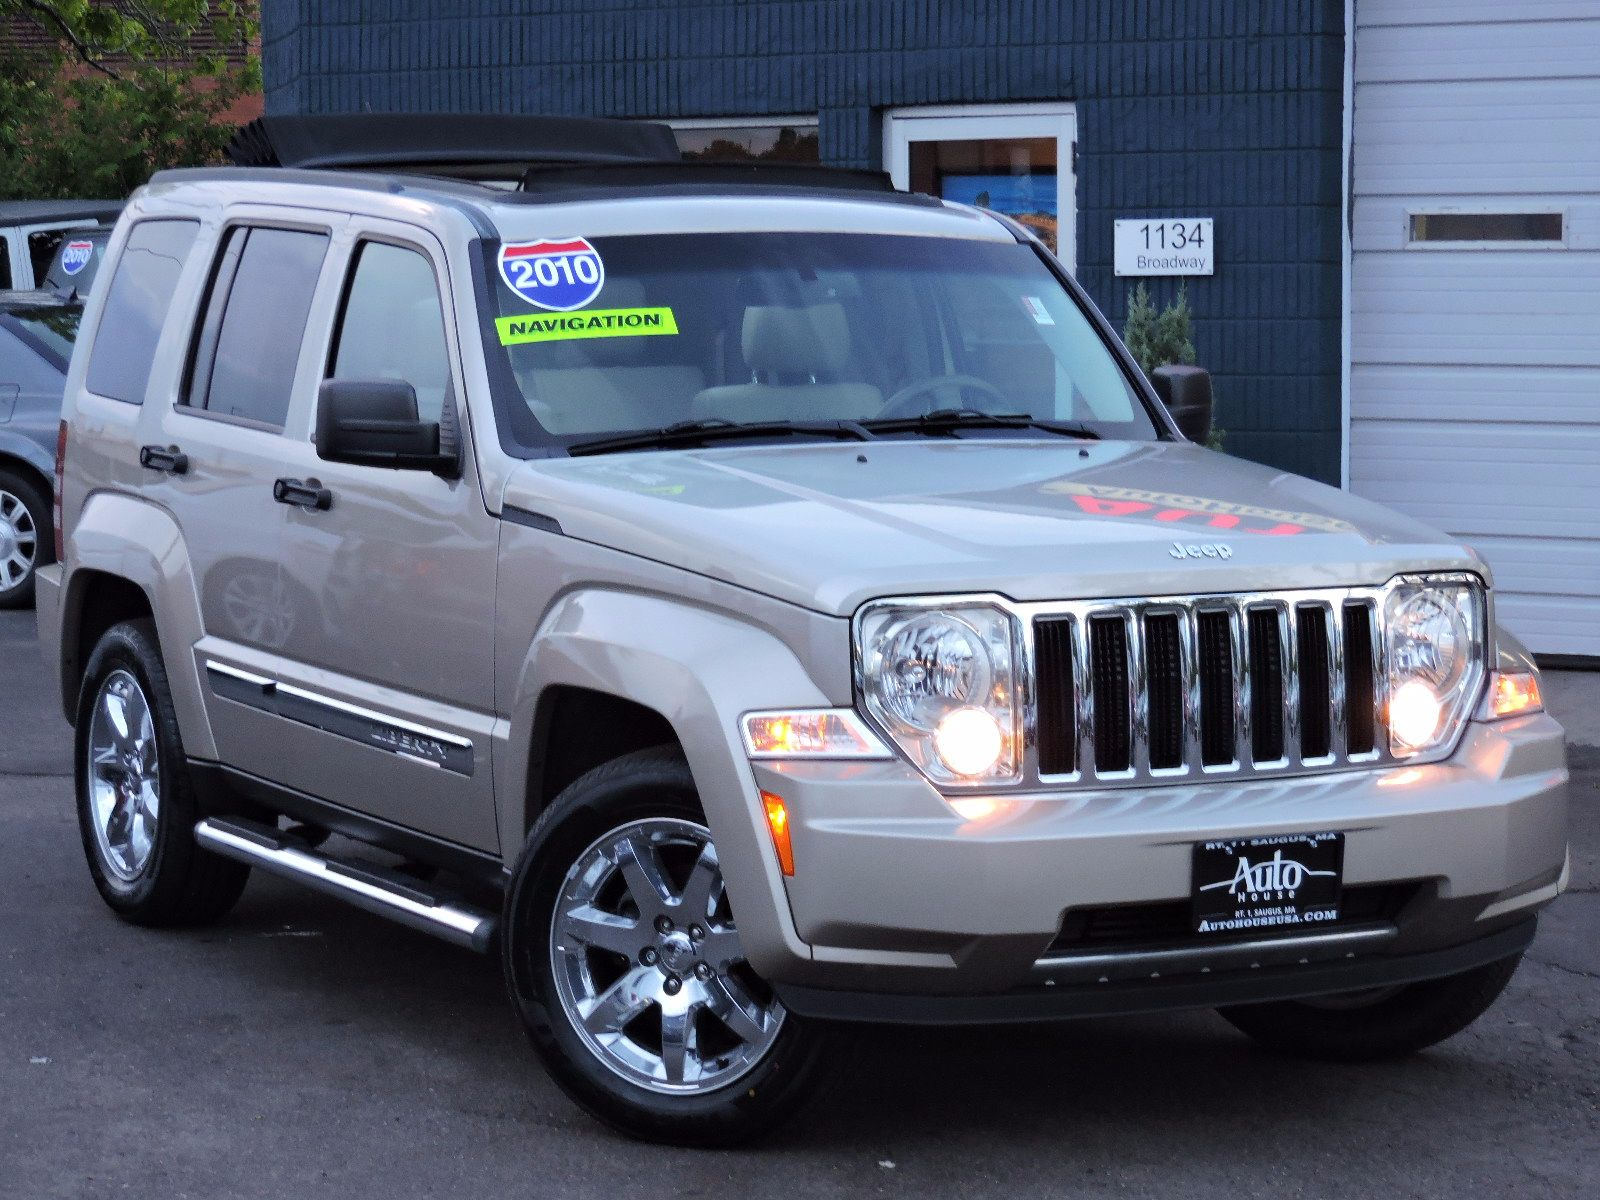 2010 Jeep Liberty - All Wheel Drive - Limited - Navigation